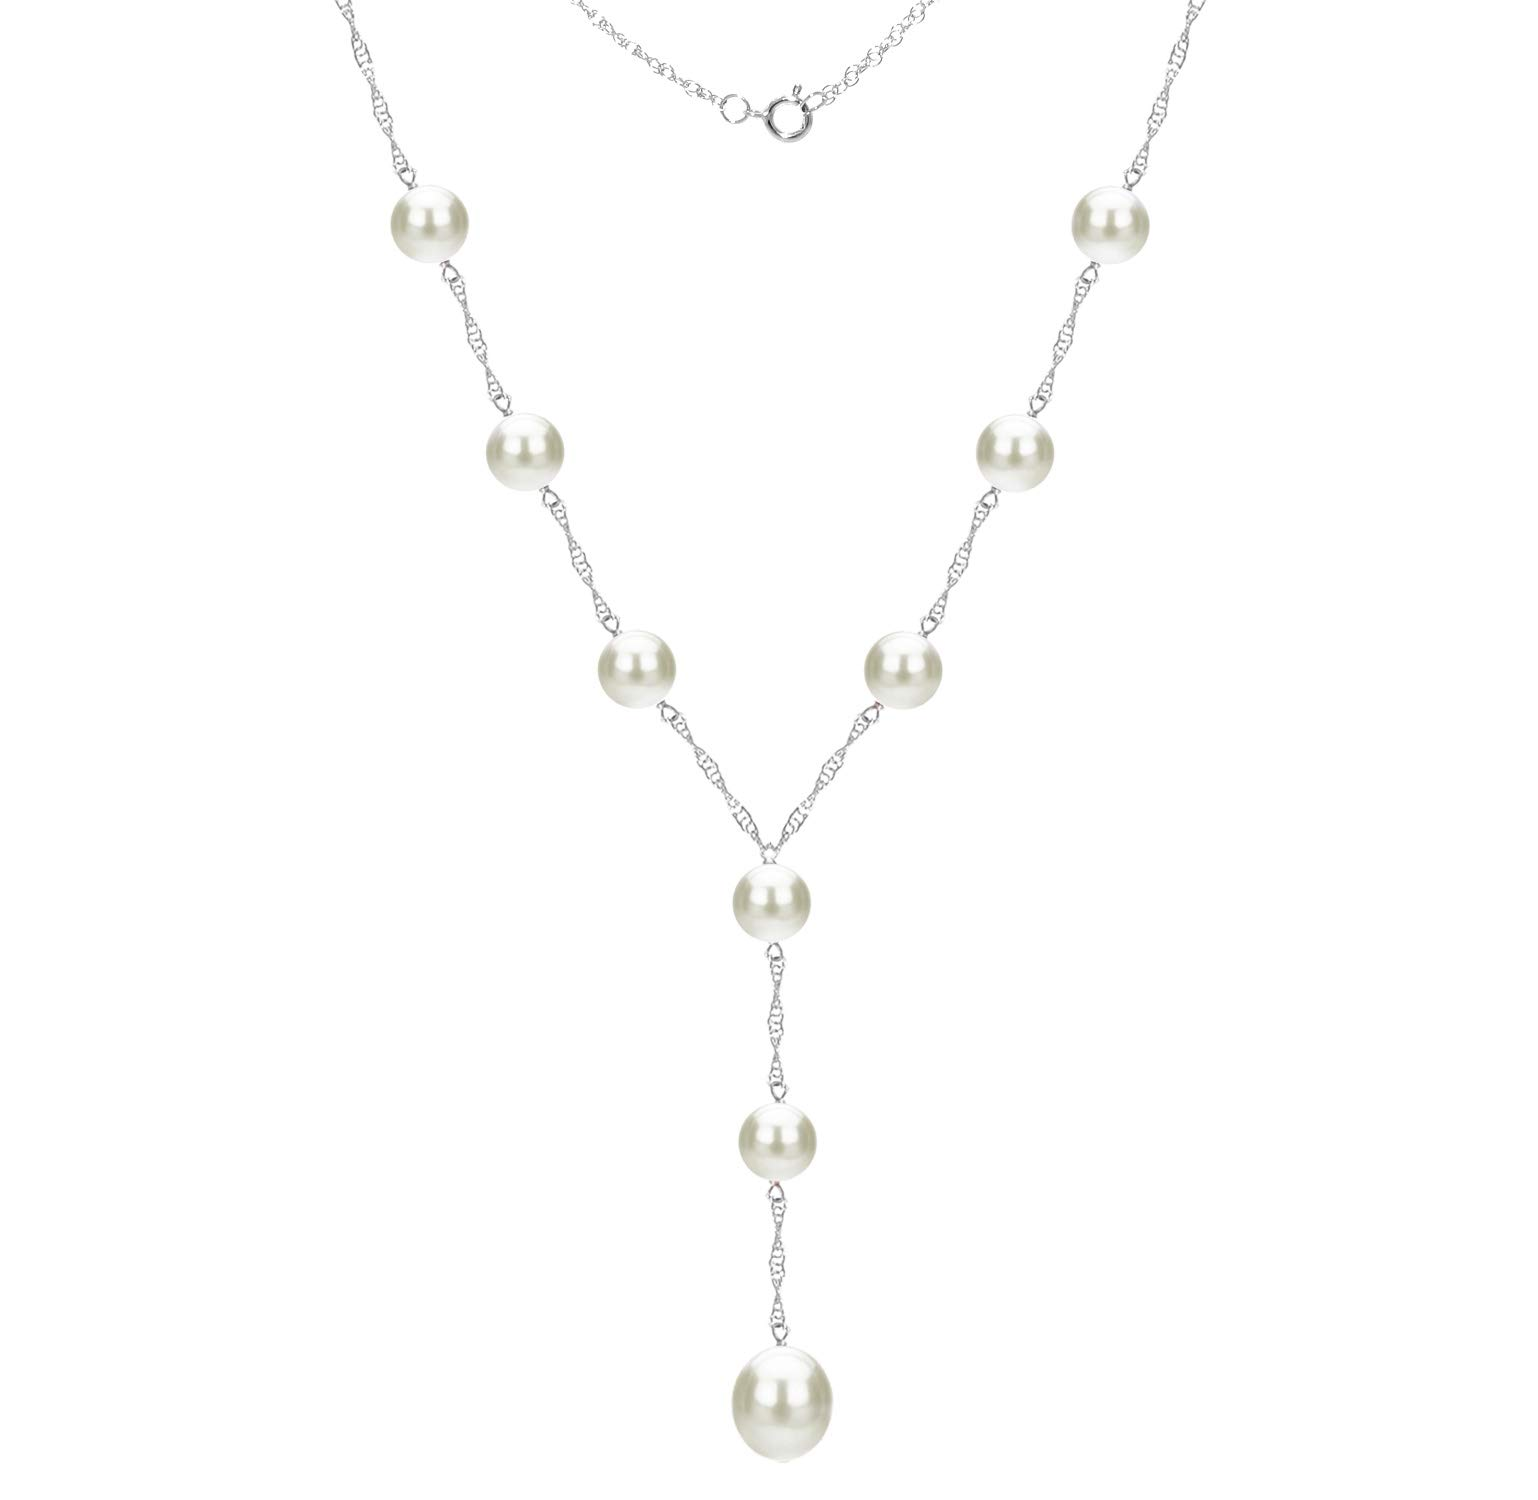 14k White Gold 8-8.5mm and 9-9.5mm White Freshwater Cultured Pearl Station Necklace, 18'' + 2'' Drop